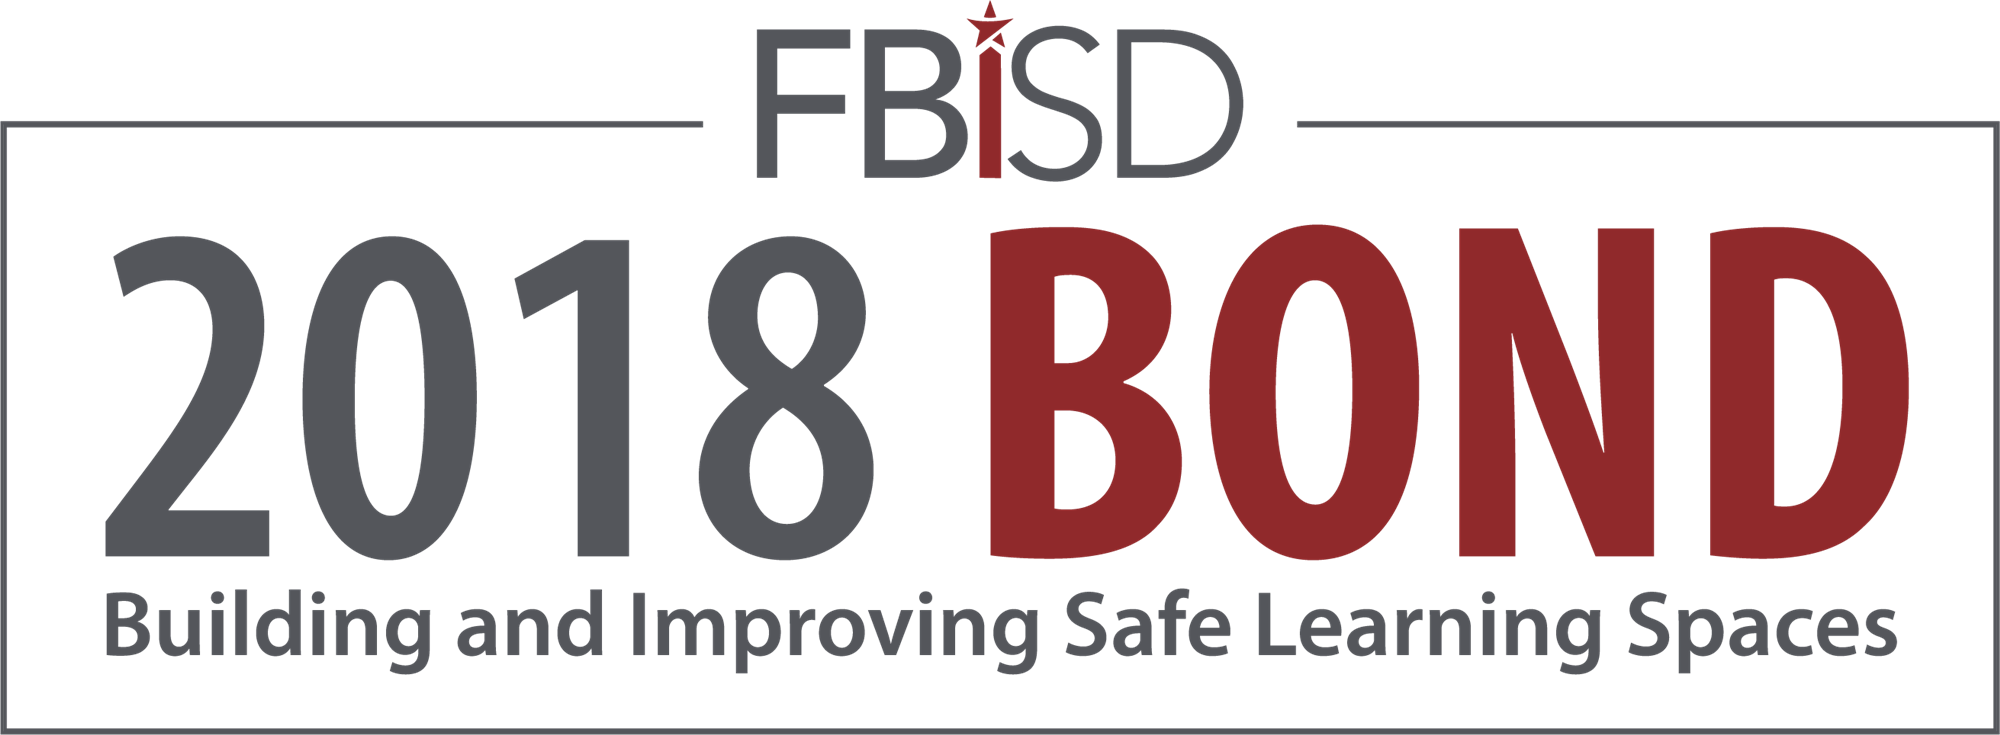 2018 - Building and Improving Safe Learning Spaces